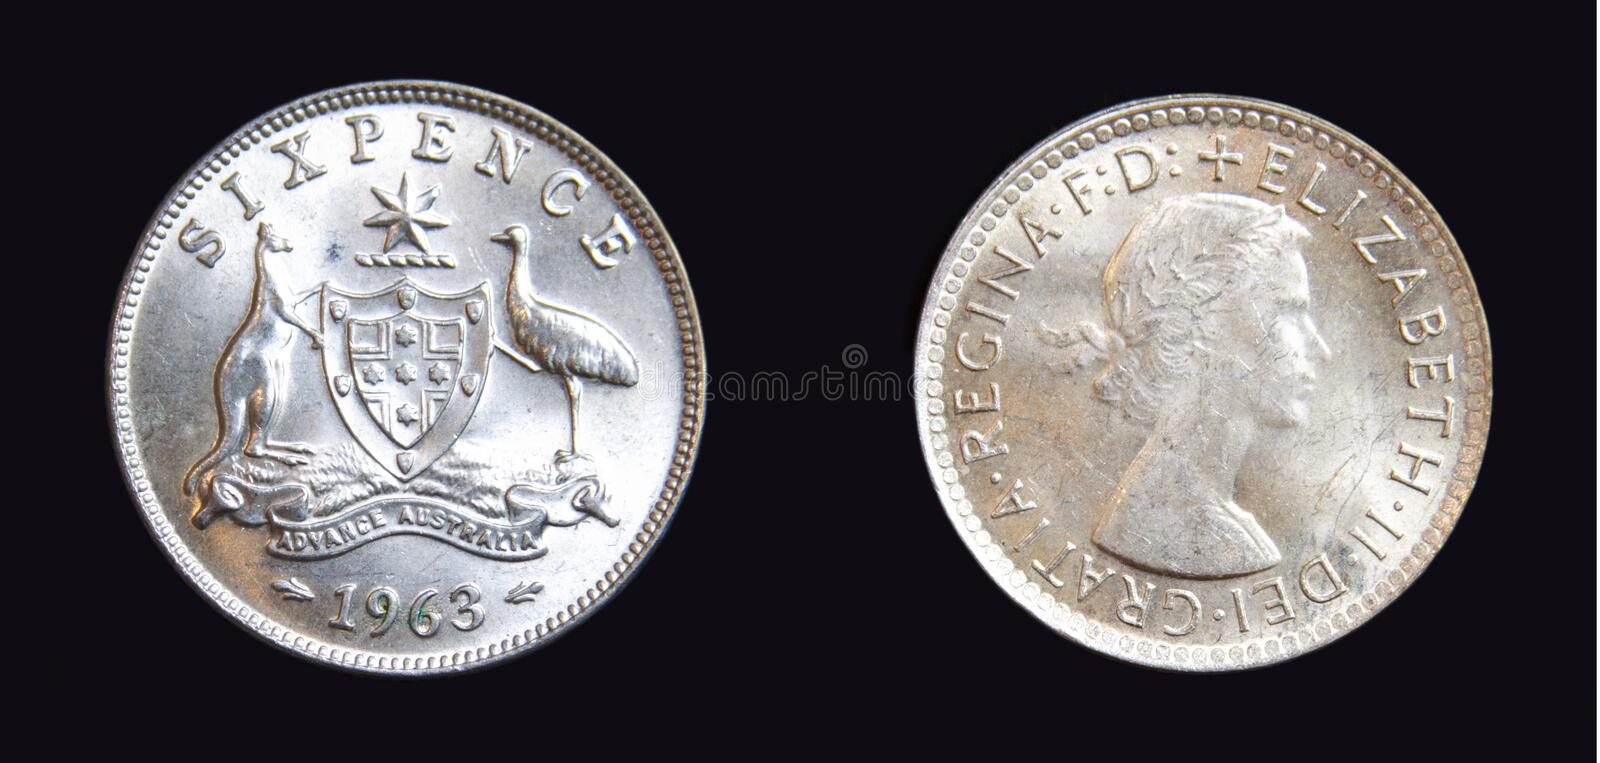 1963 Australian Sixpence Silver Coin. 1963 Australian sixpence pre-decimal 50% silver coin on isolated dark background stock photography